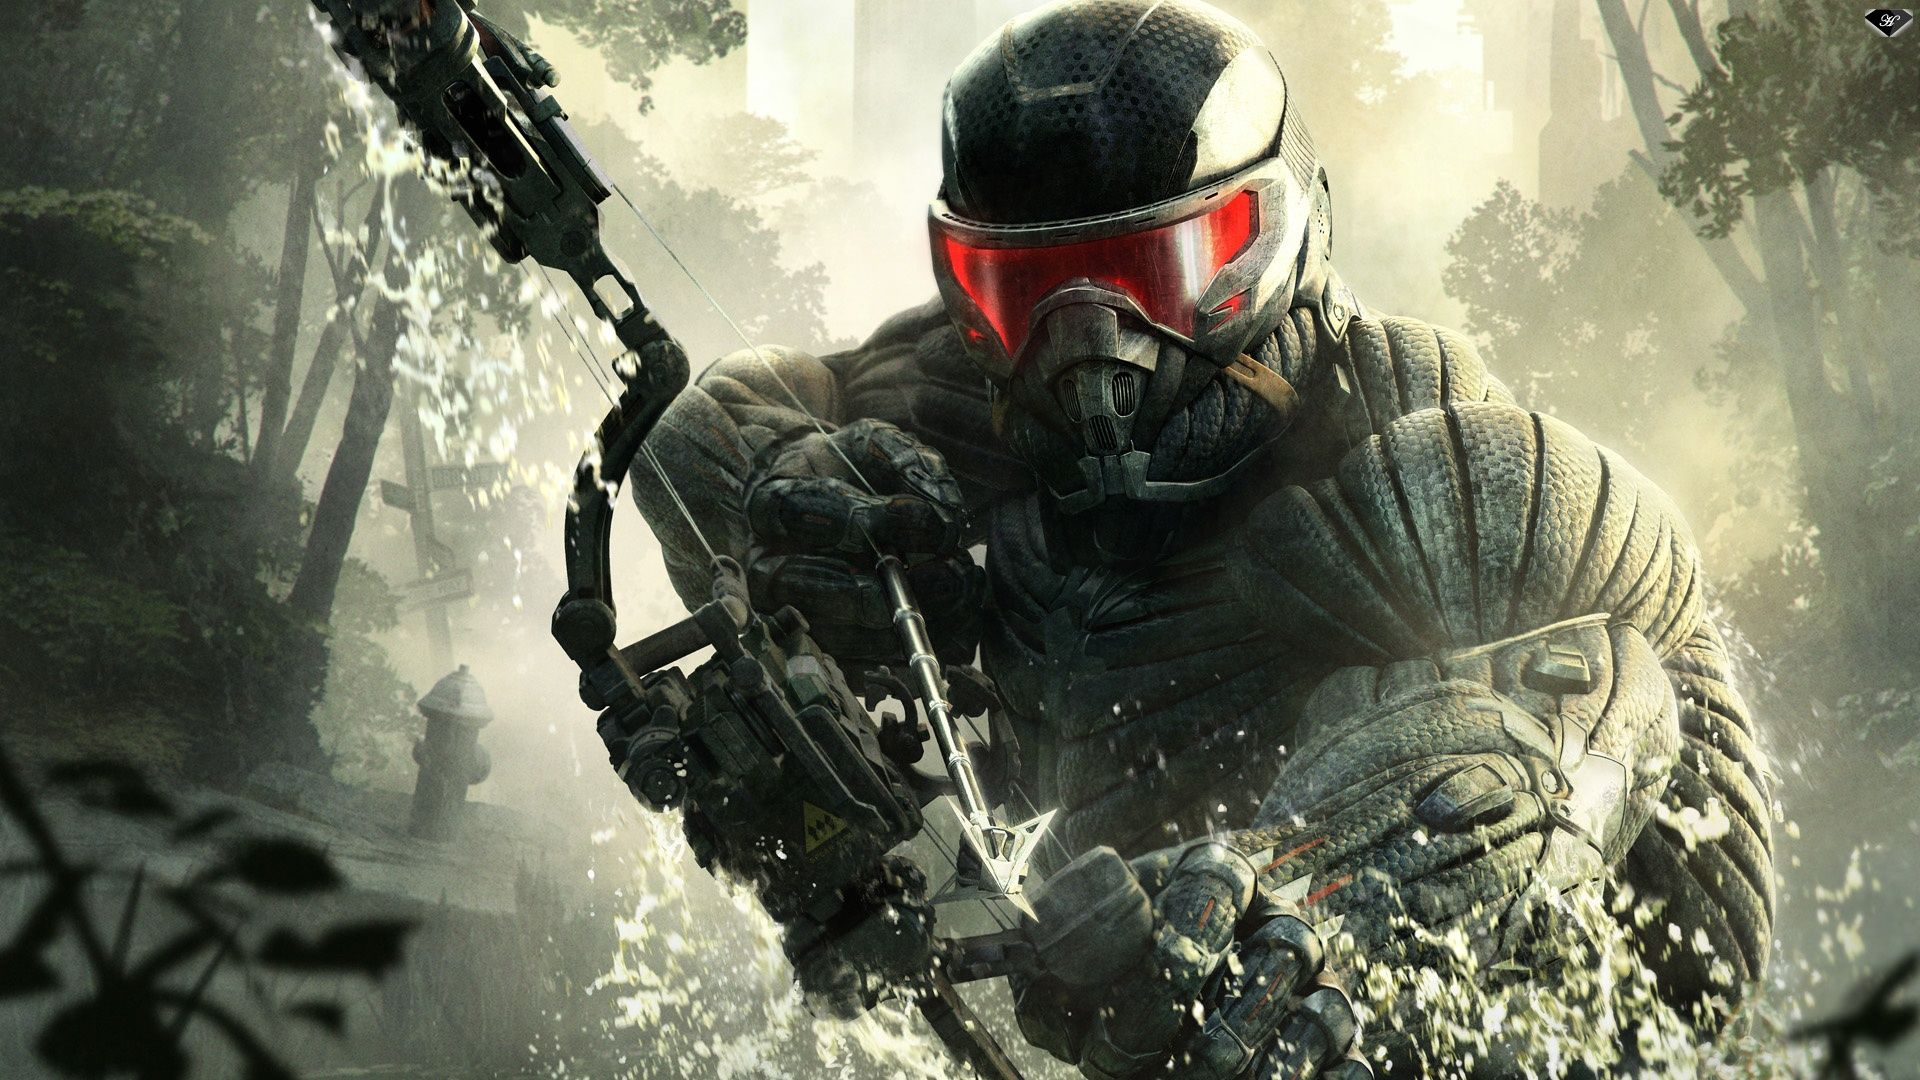 Hd wallpaper games - Game Wallpapers Archives Hd Wallpapers Buzz 1920 1080 Game Wallpapers Hd 53 Wallpapers